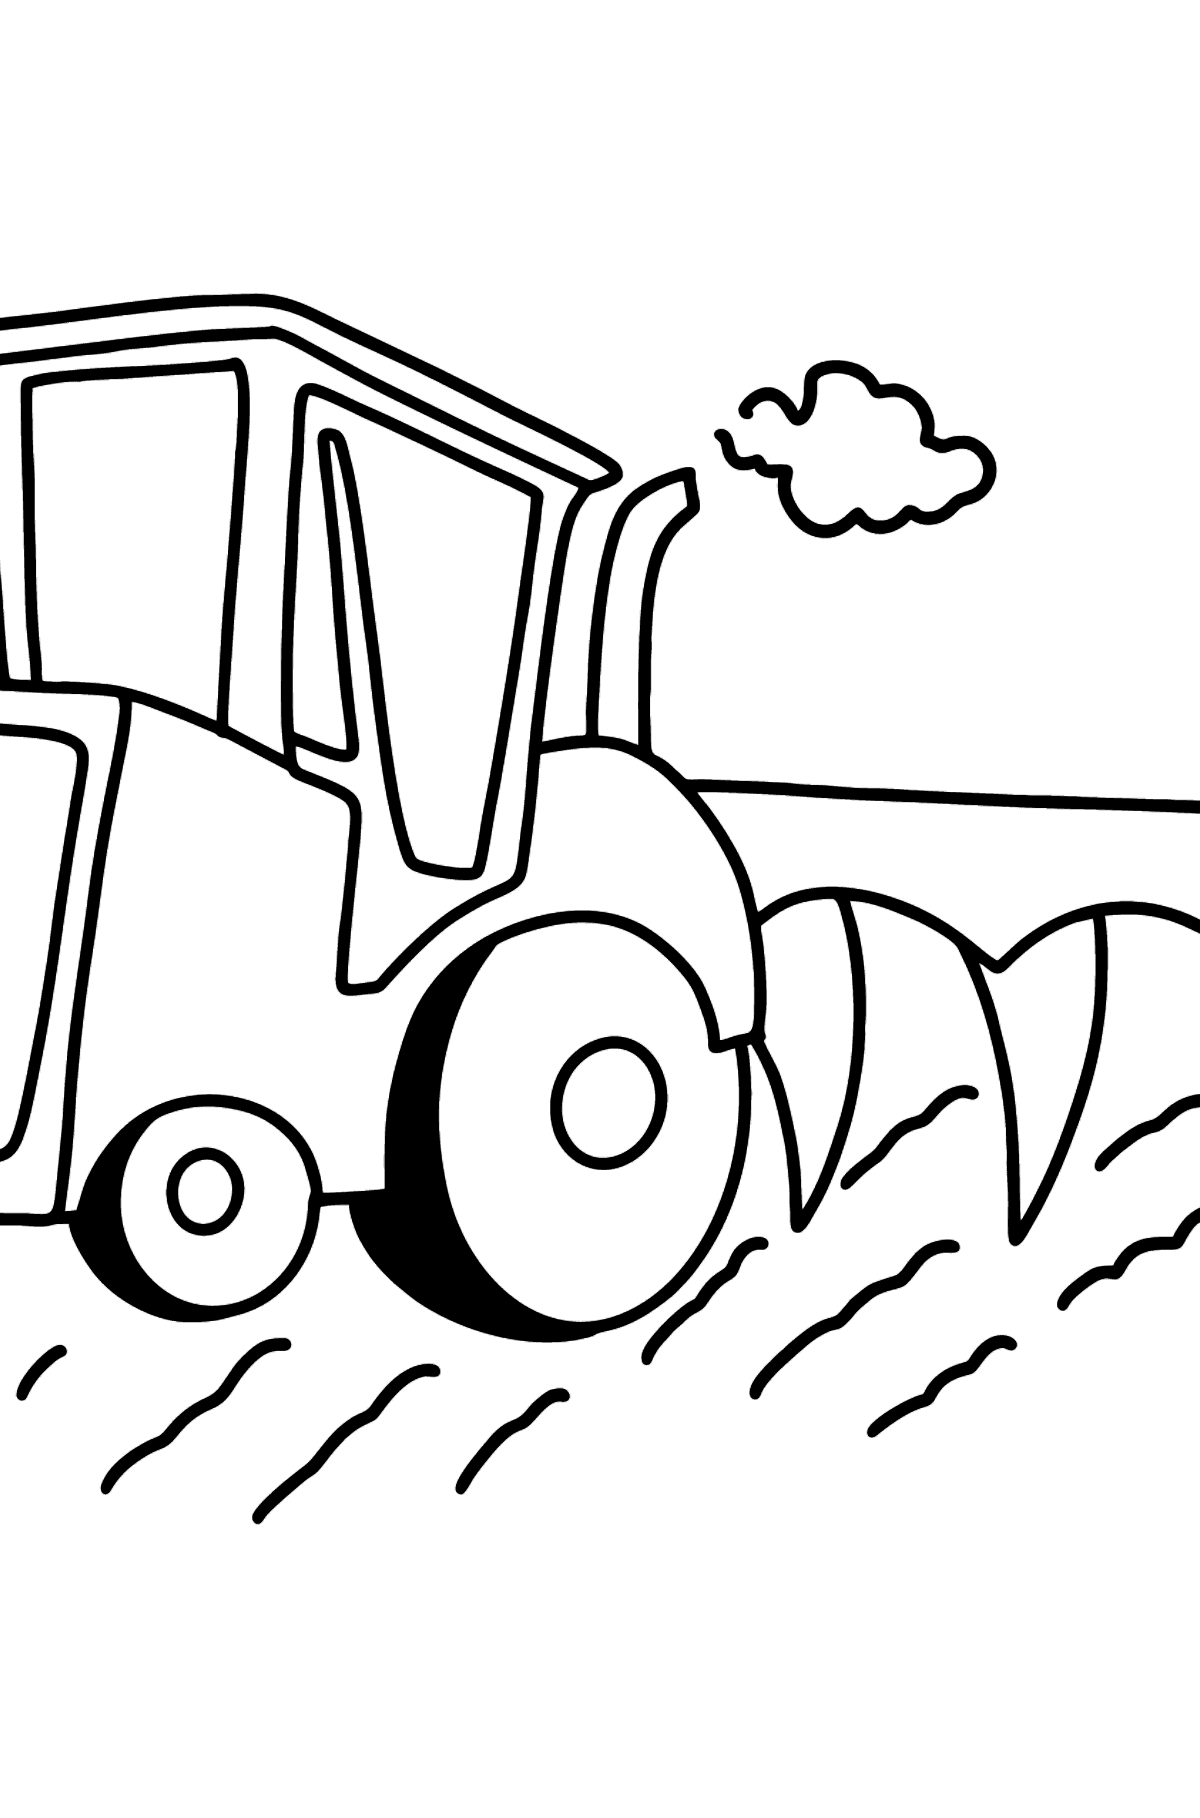 Tractor with Plow coloring page - Coloring Pages for Kids